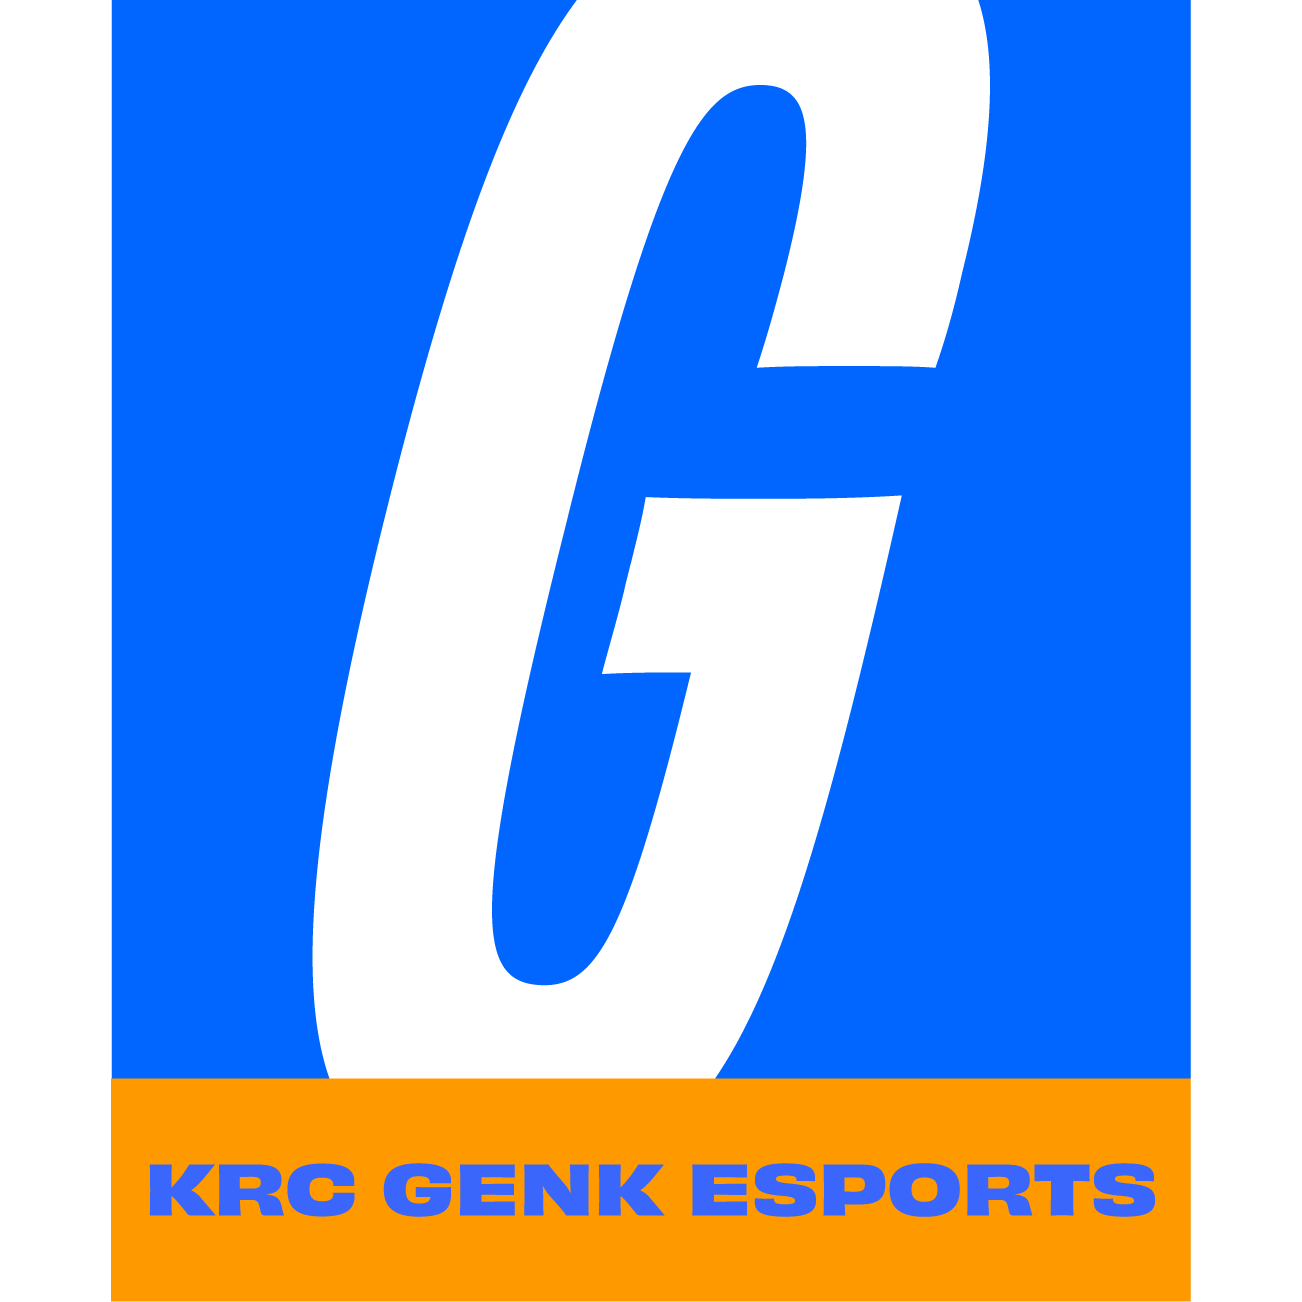 Krc Genk Esports Leaguepedia League Of Legends Esports Wiki